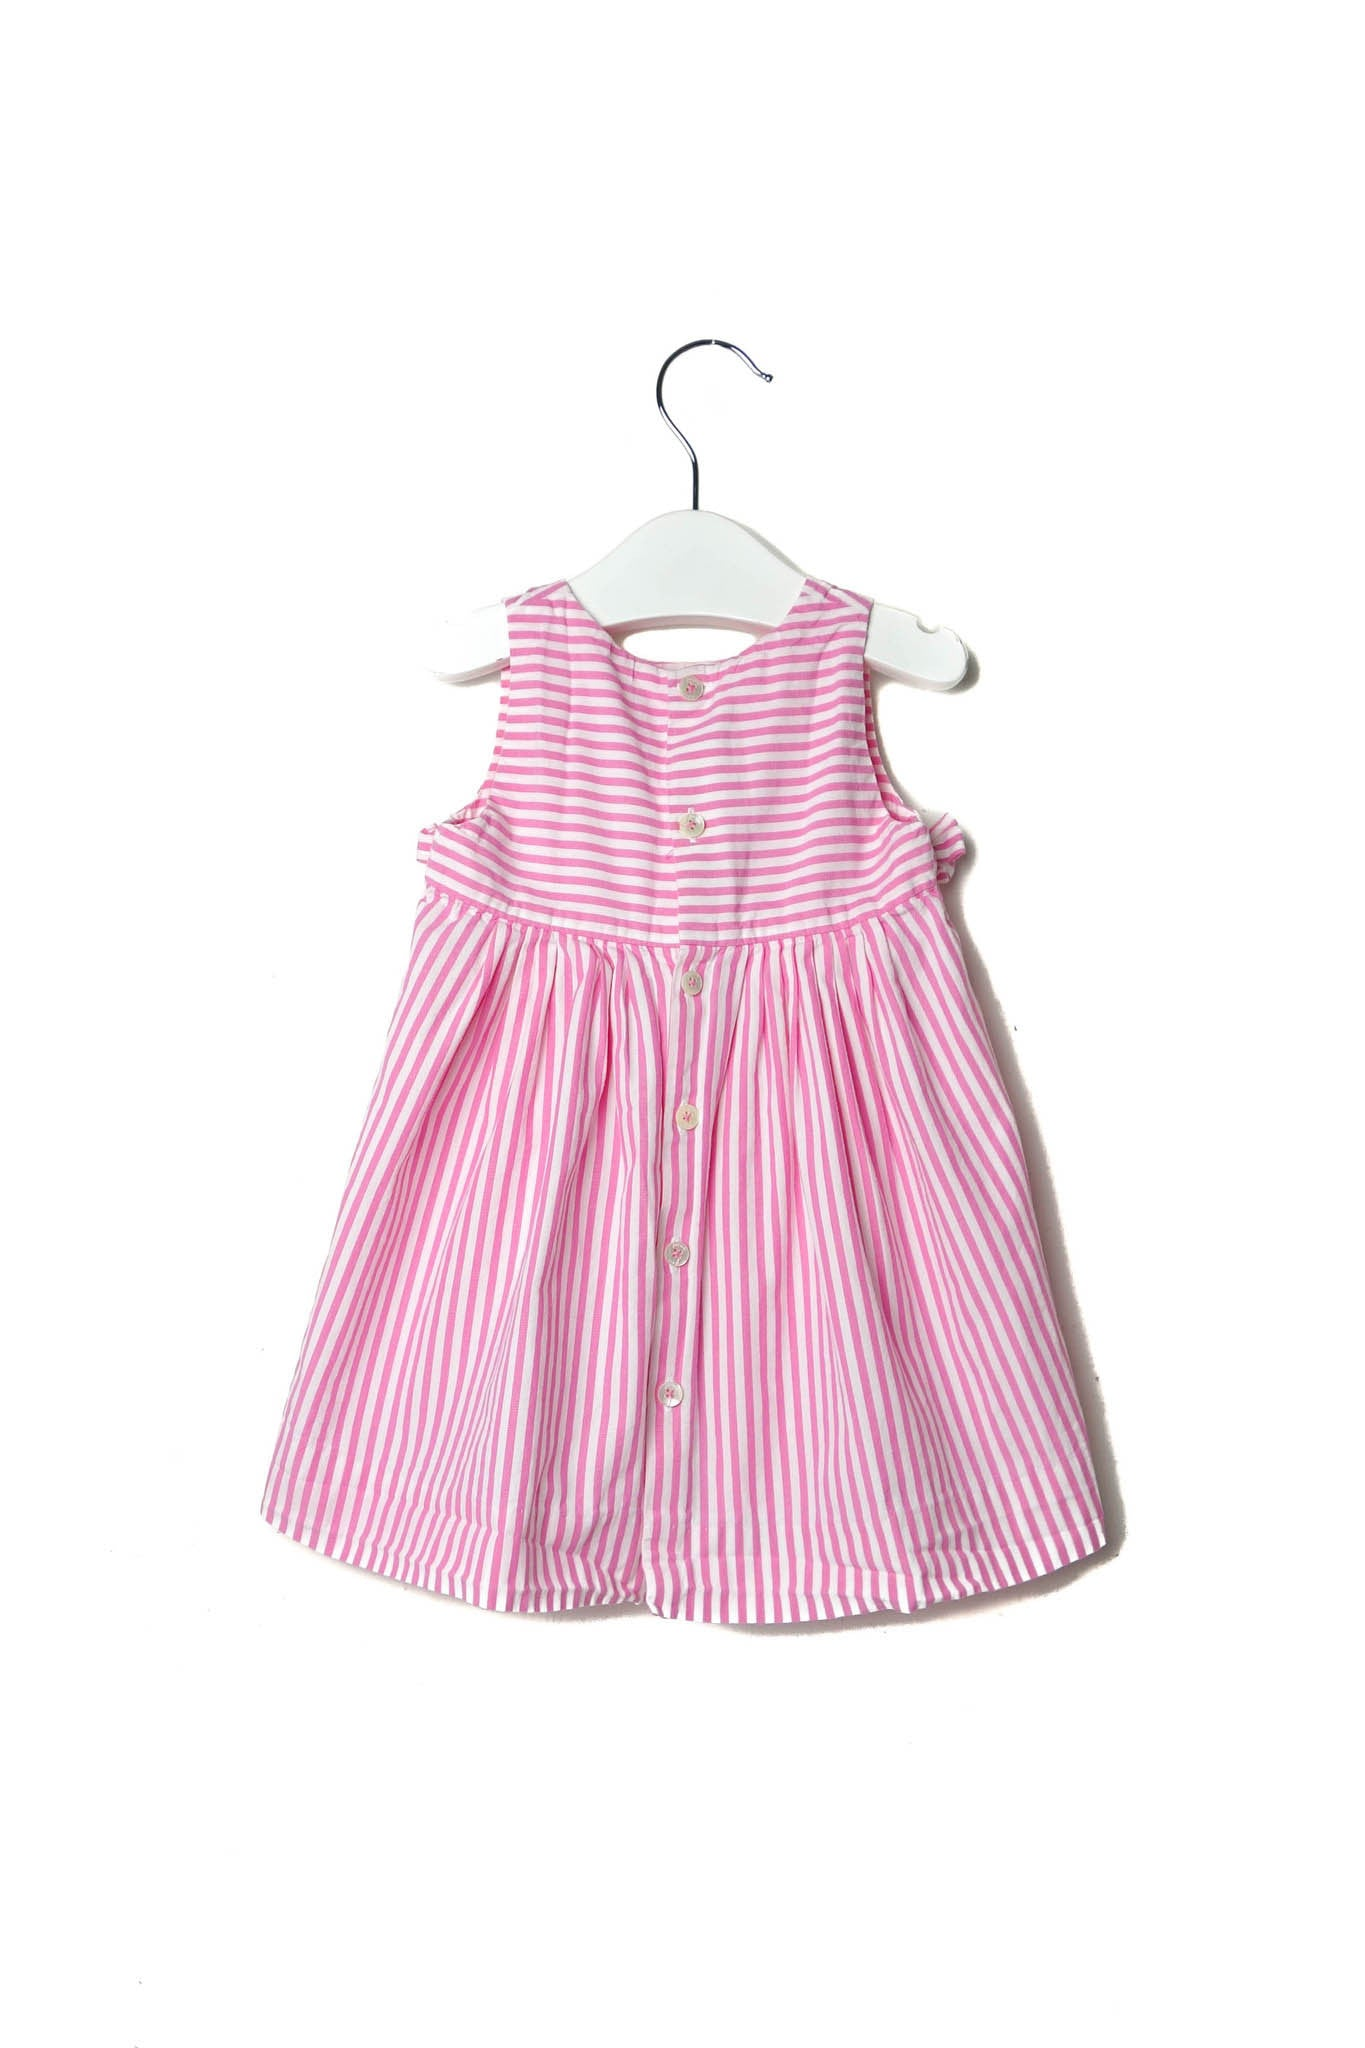 10002399 Jacadi Baby~Dress and Bloomer 6M at Retykle